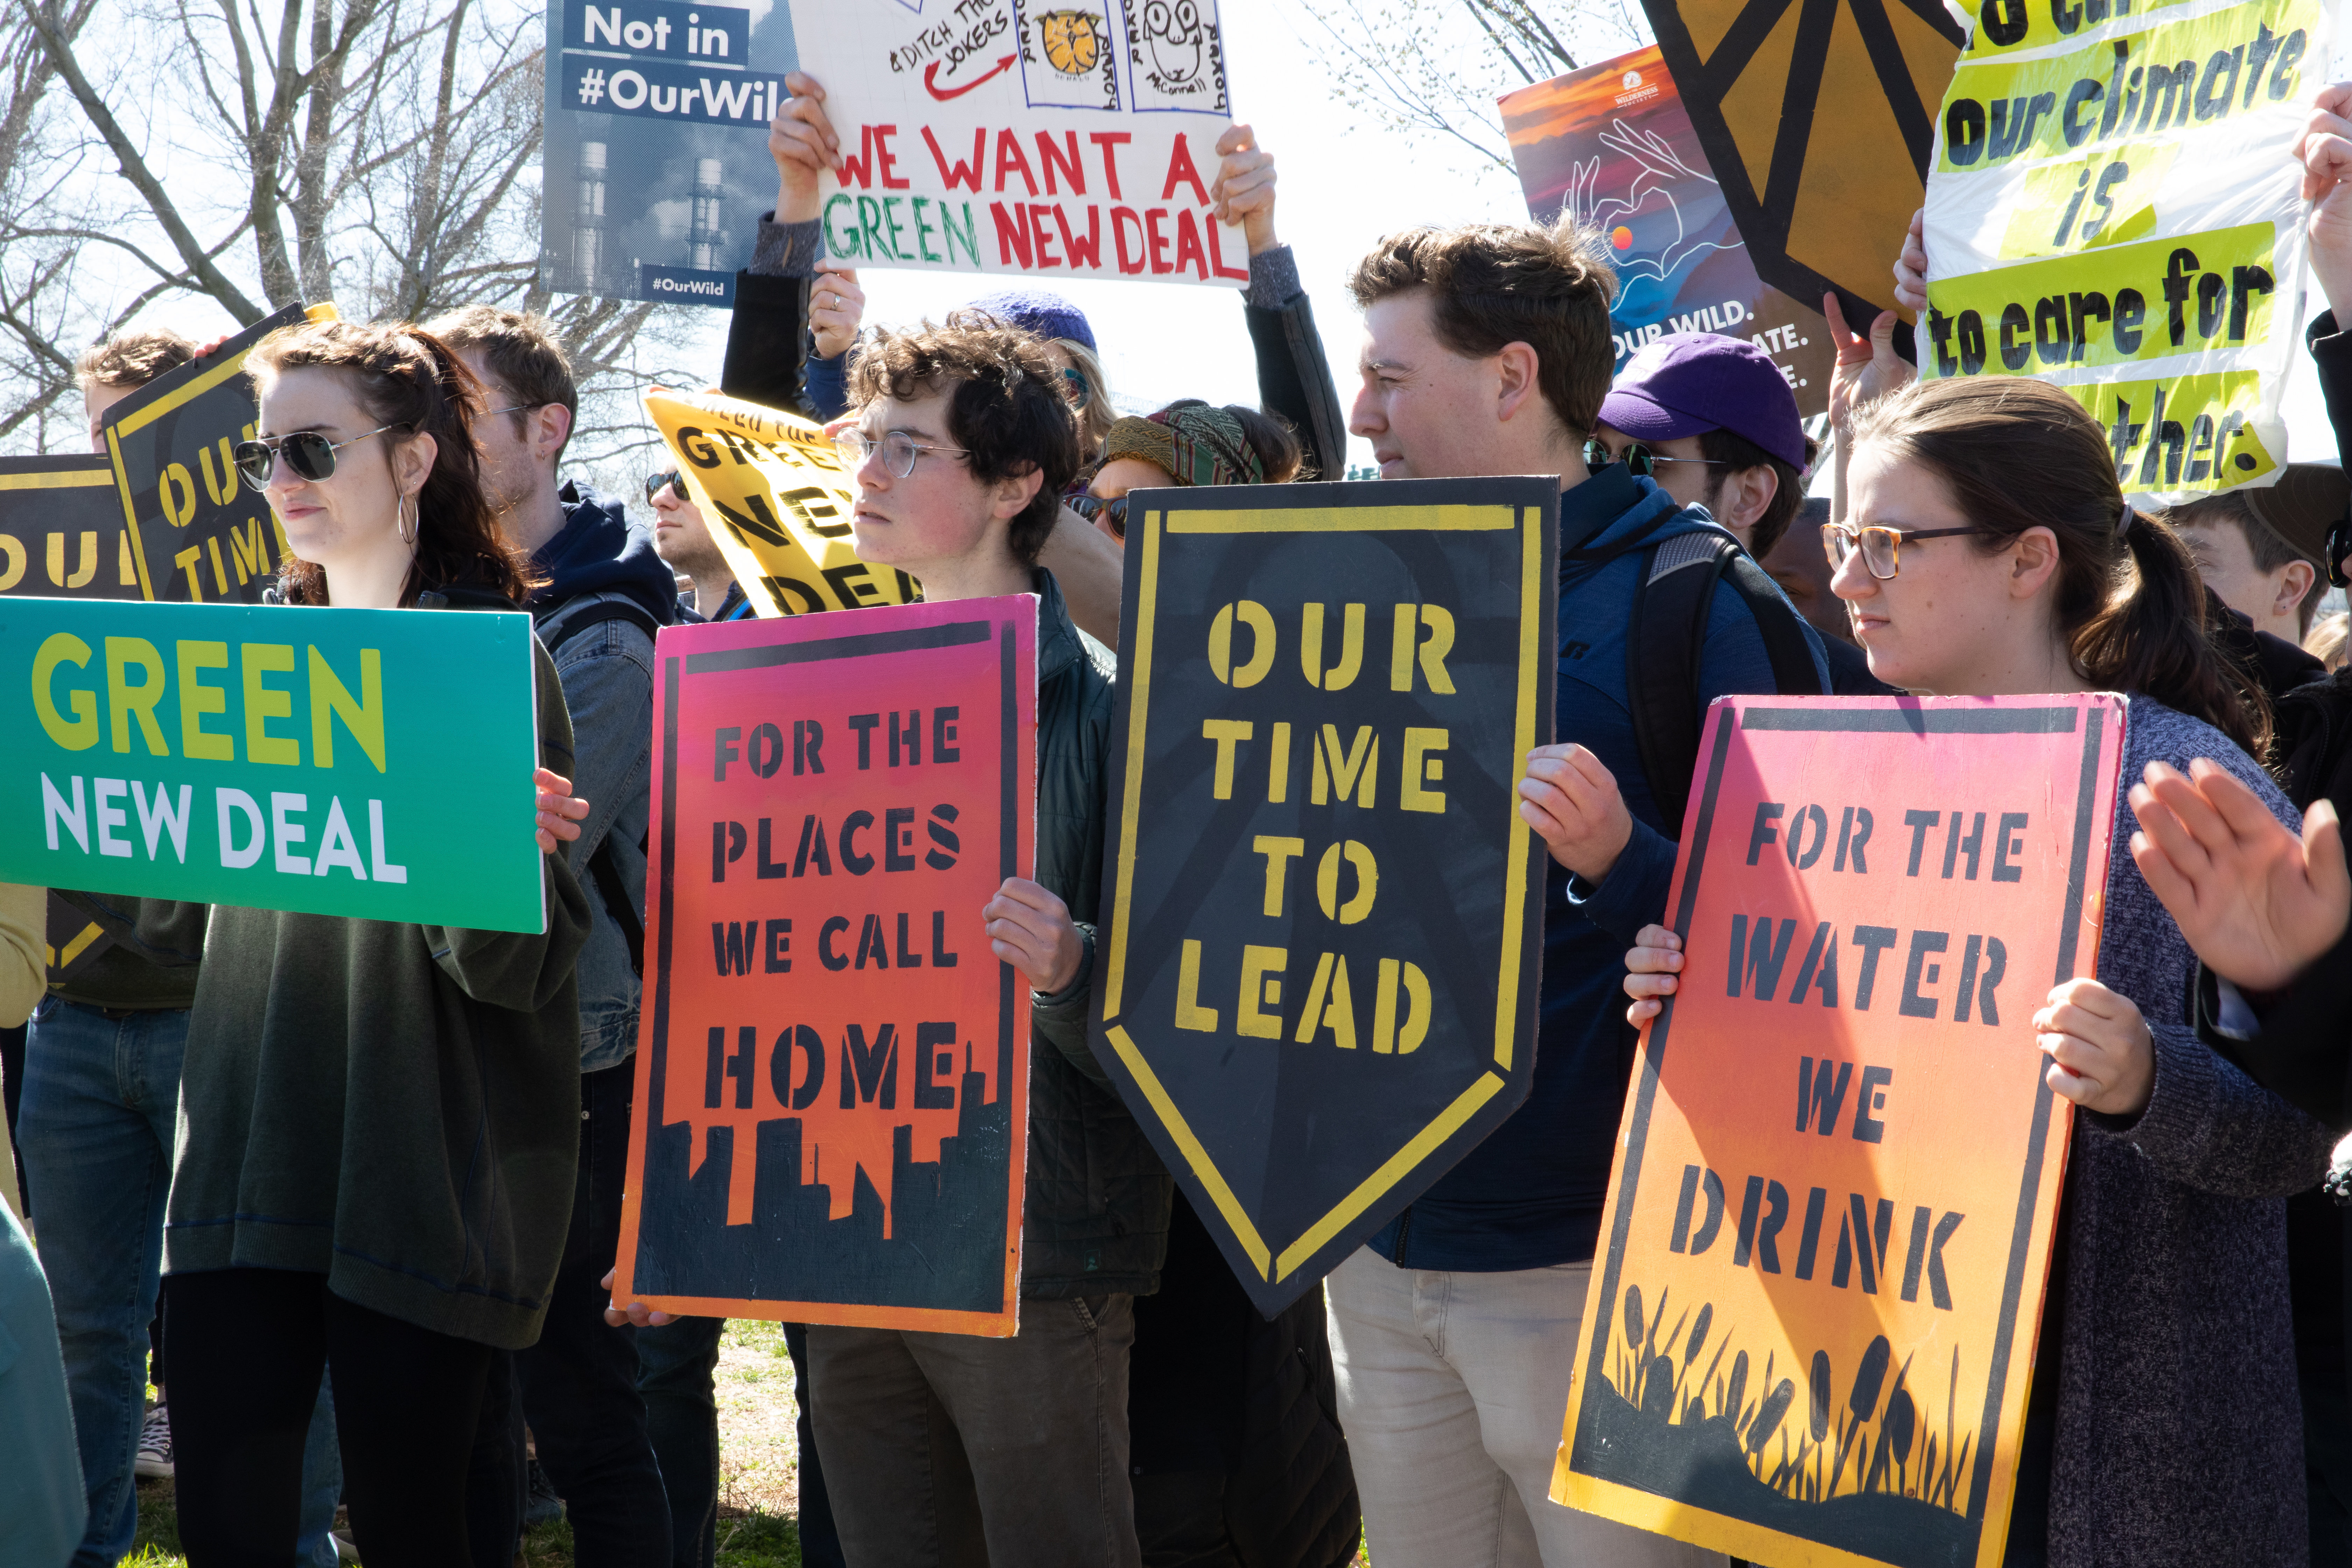 Sunrise Movement activists protest the Green New Deal.